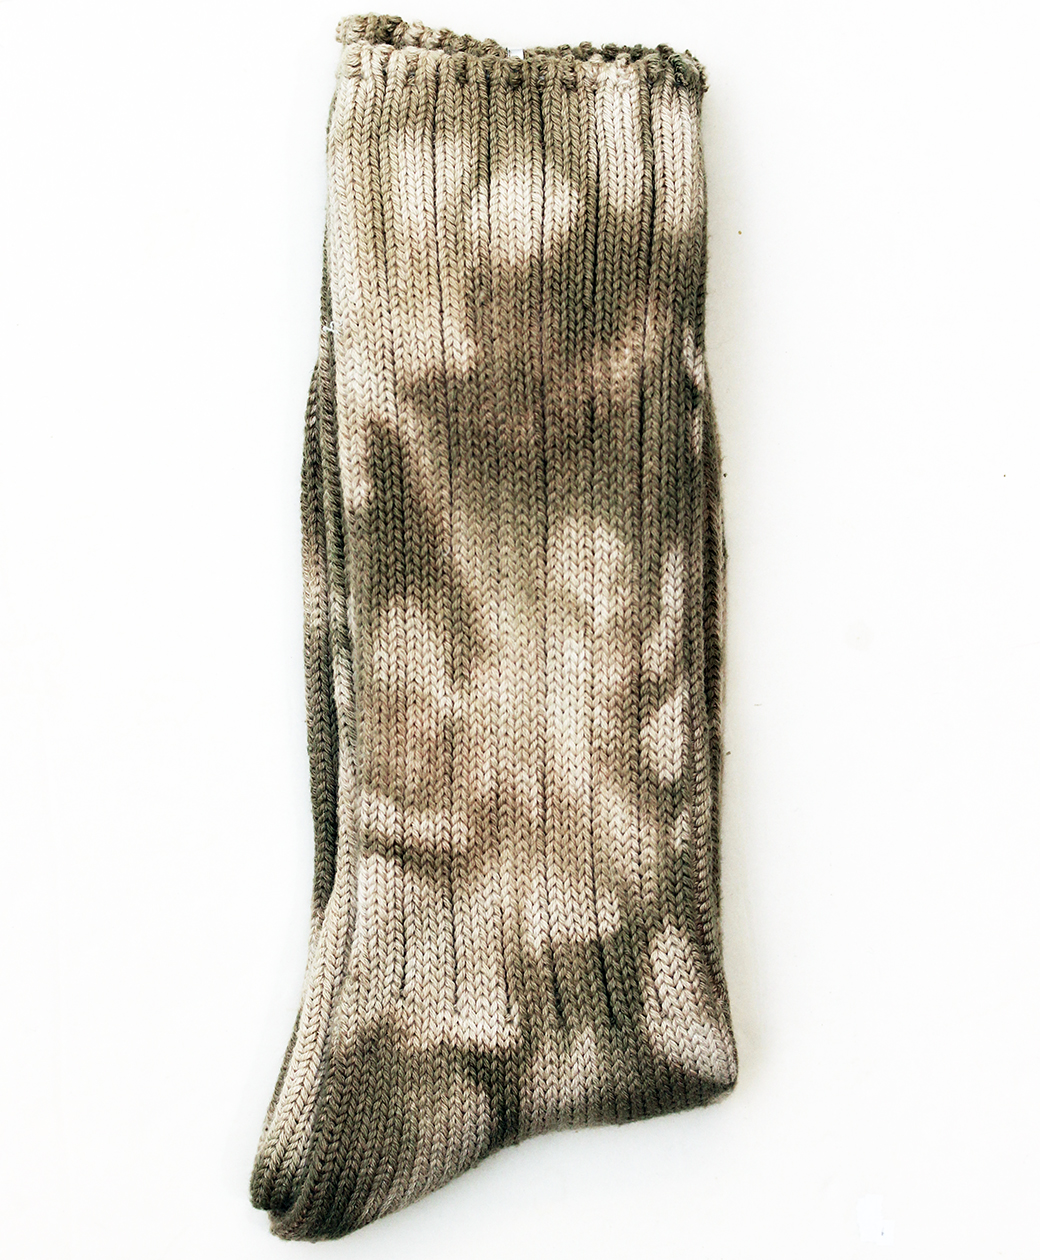 hobo TIE-DYED COTTON CREW SOCKS(BEIGE)